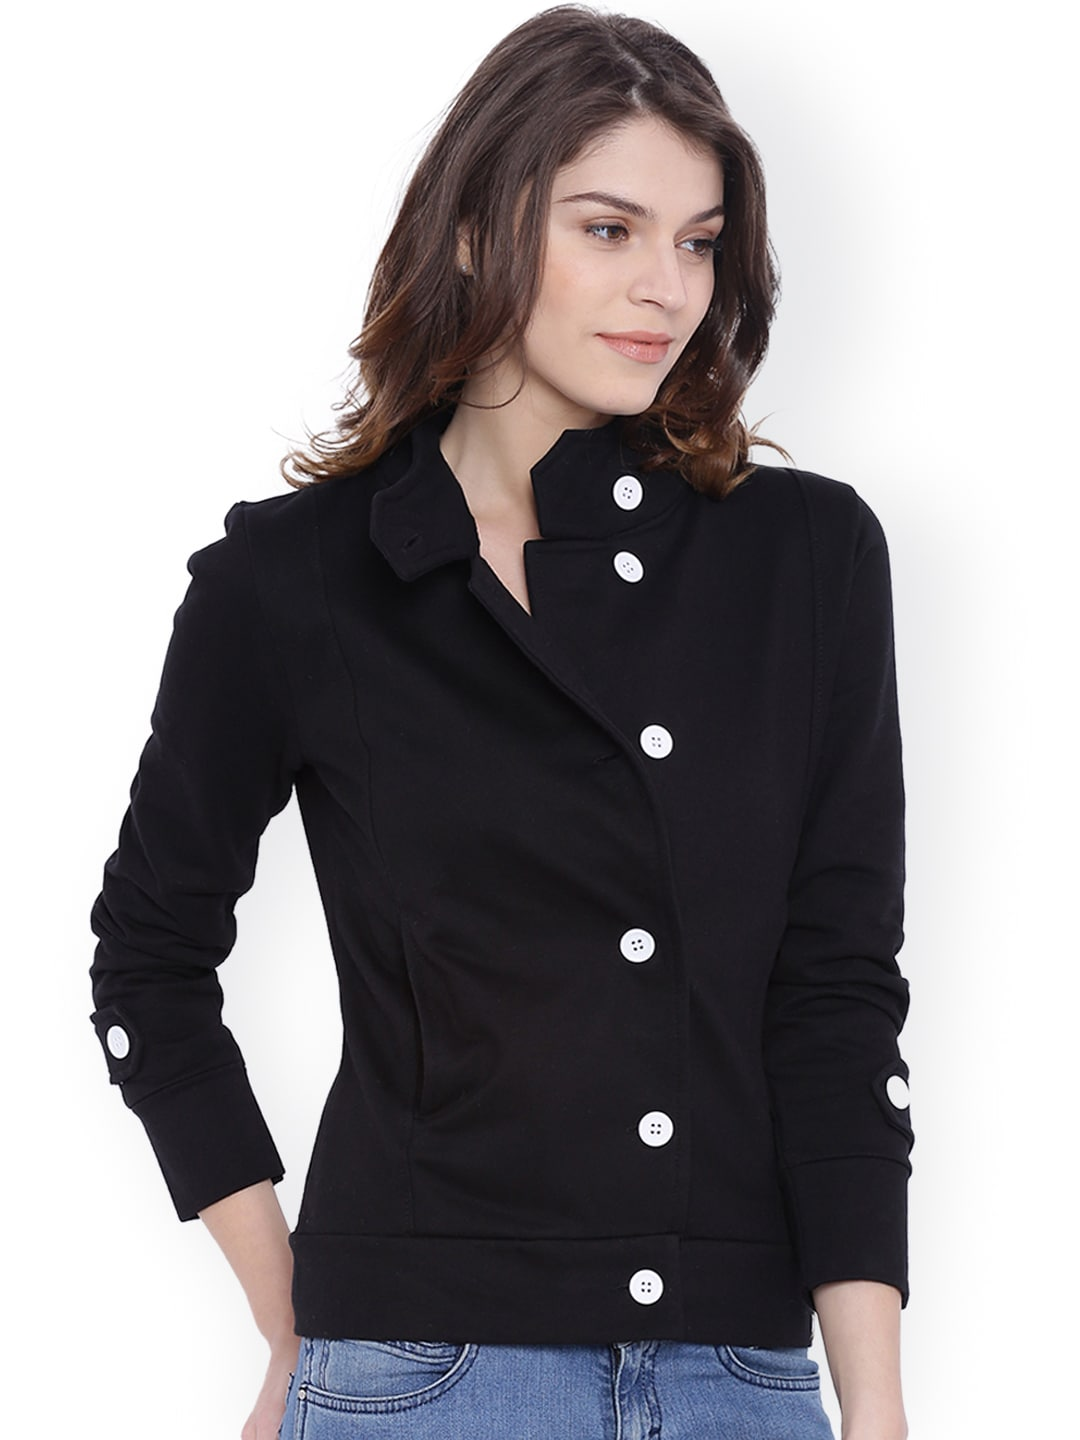 Jackets for Women - Buy Casual Leather Jackets for Women Online